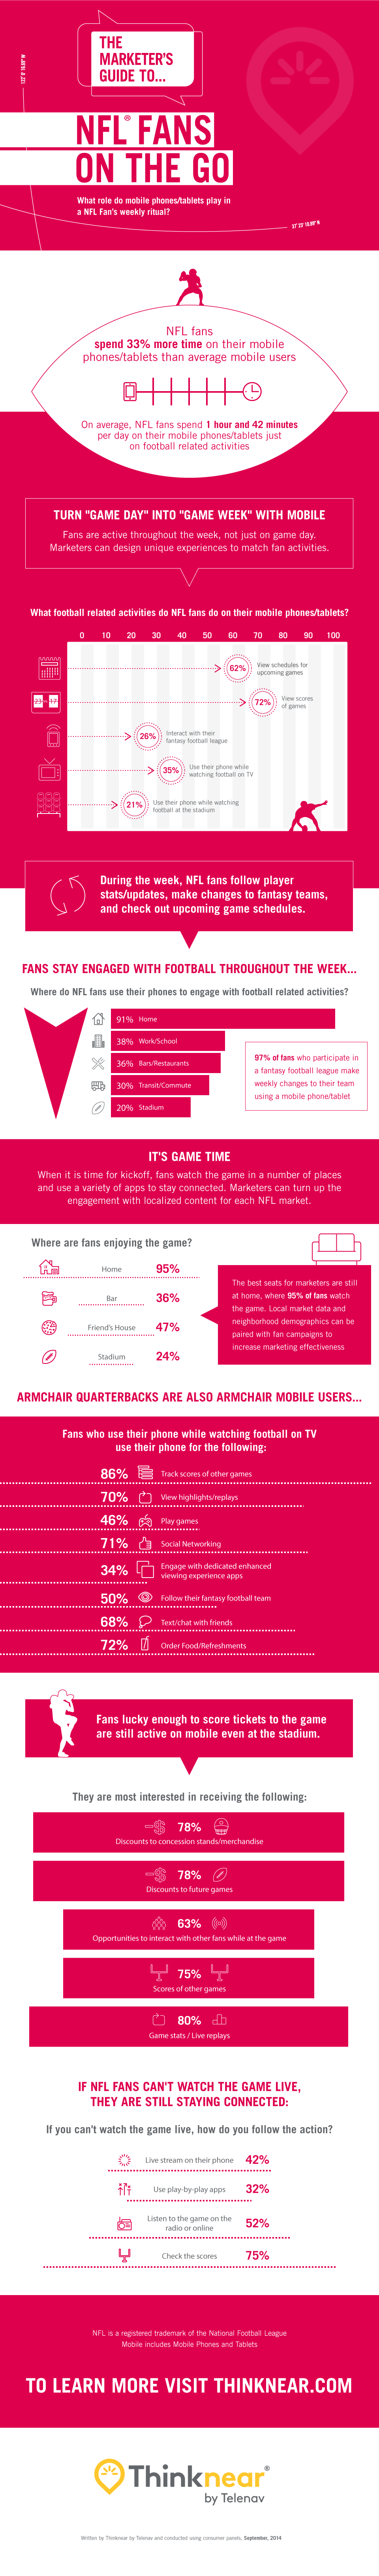 Mobile-Marketers-Guide-to-NFL-Fans